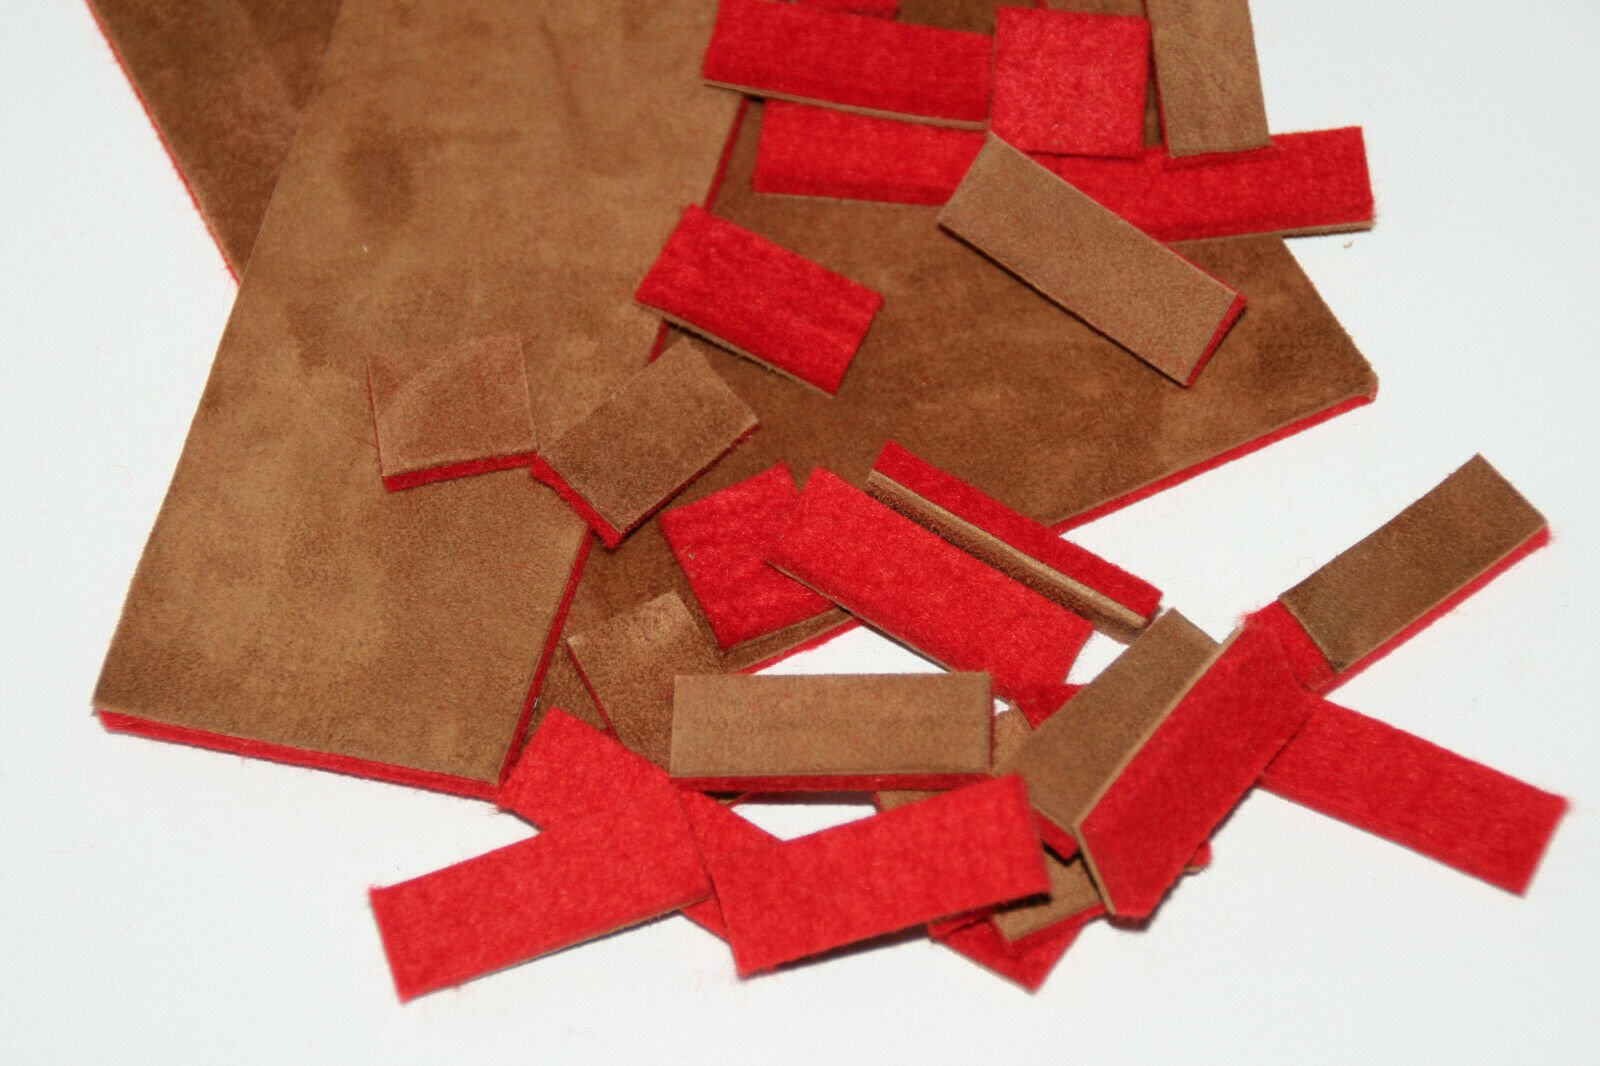 New Accordion Part - Combination Pad Material 6x3 (5cm x 7.5cm)  Felt (2mm) and Suede (1mm)